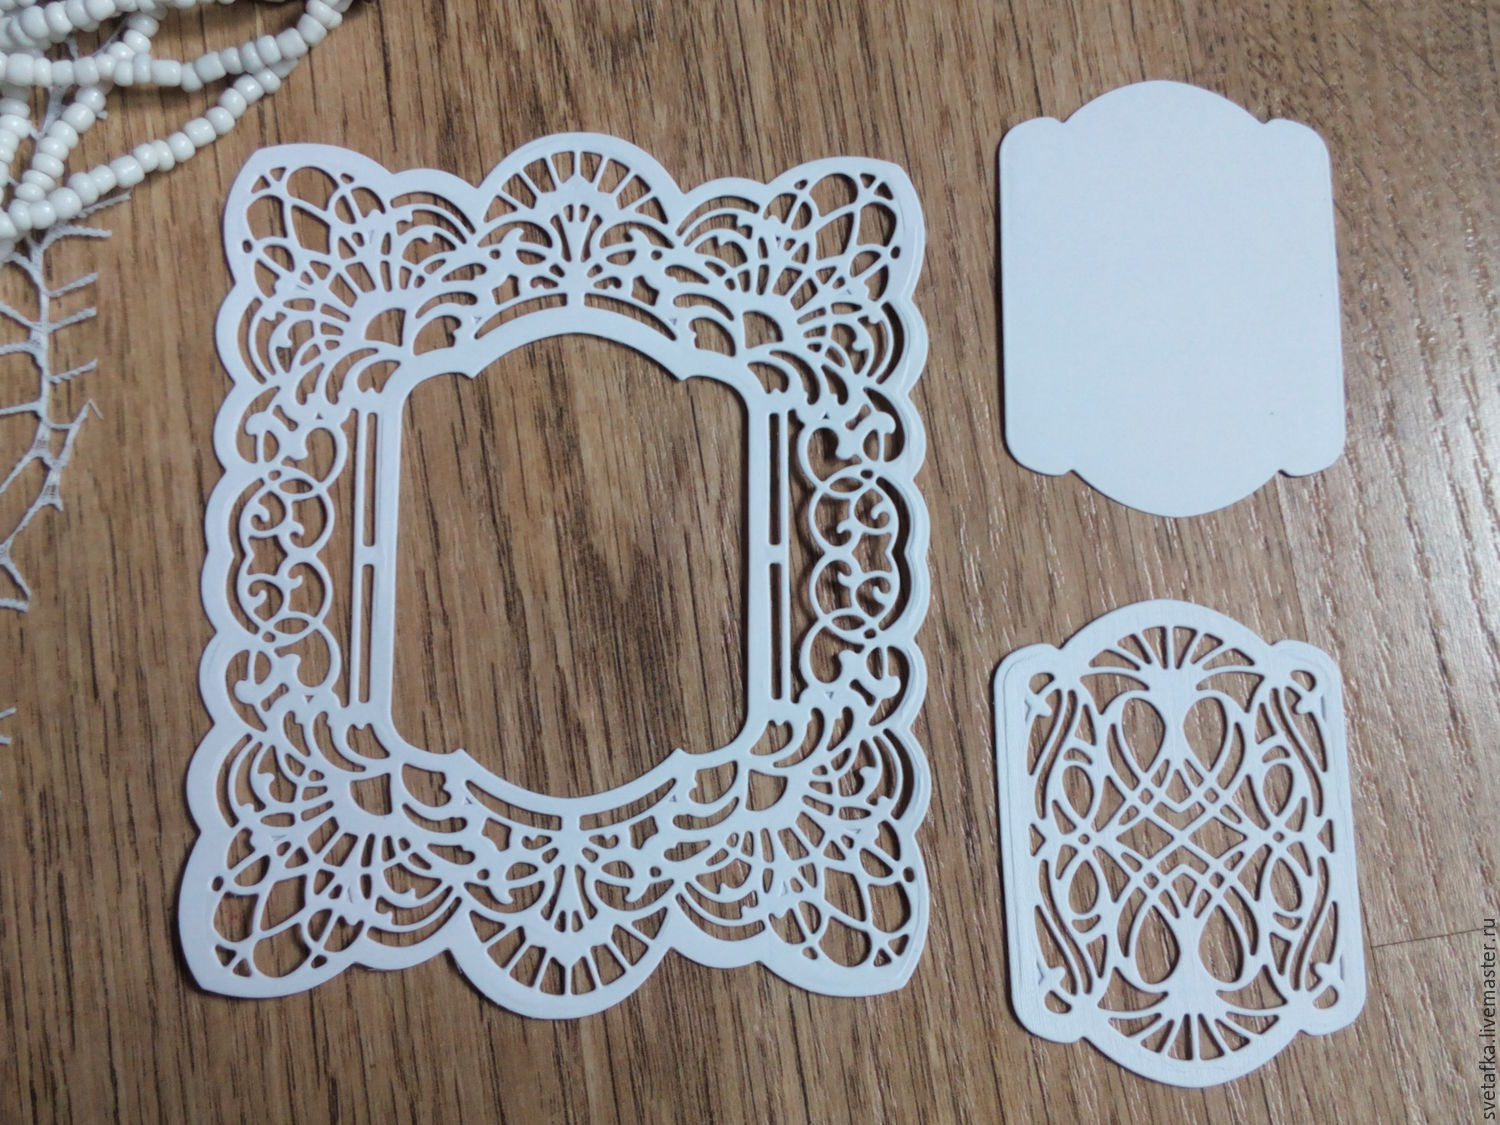 Cutting for scrapbooking -WESELNA FRAME and TAG, cardboard design ...